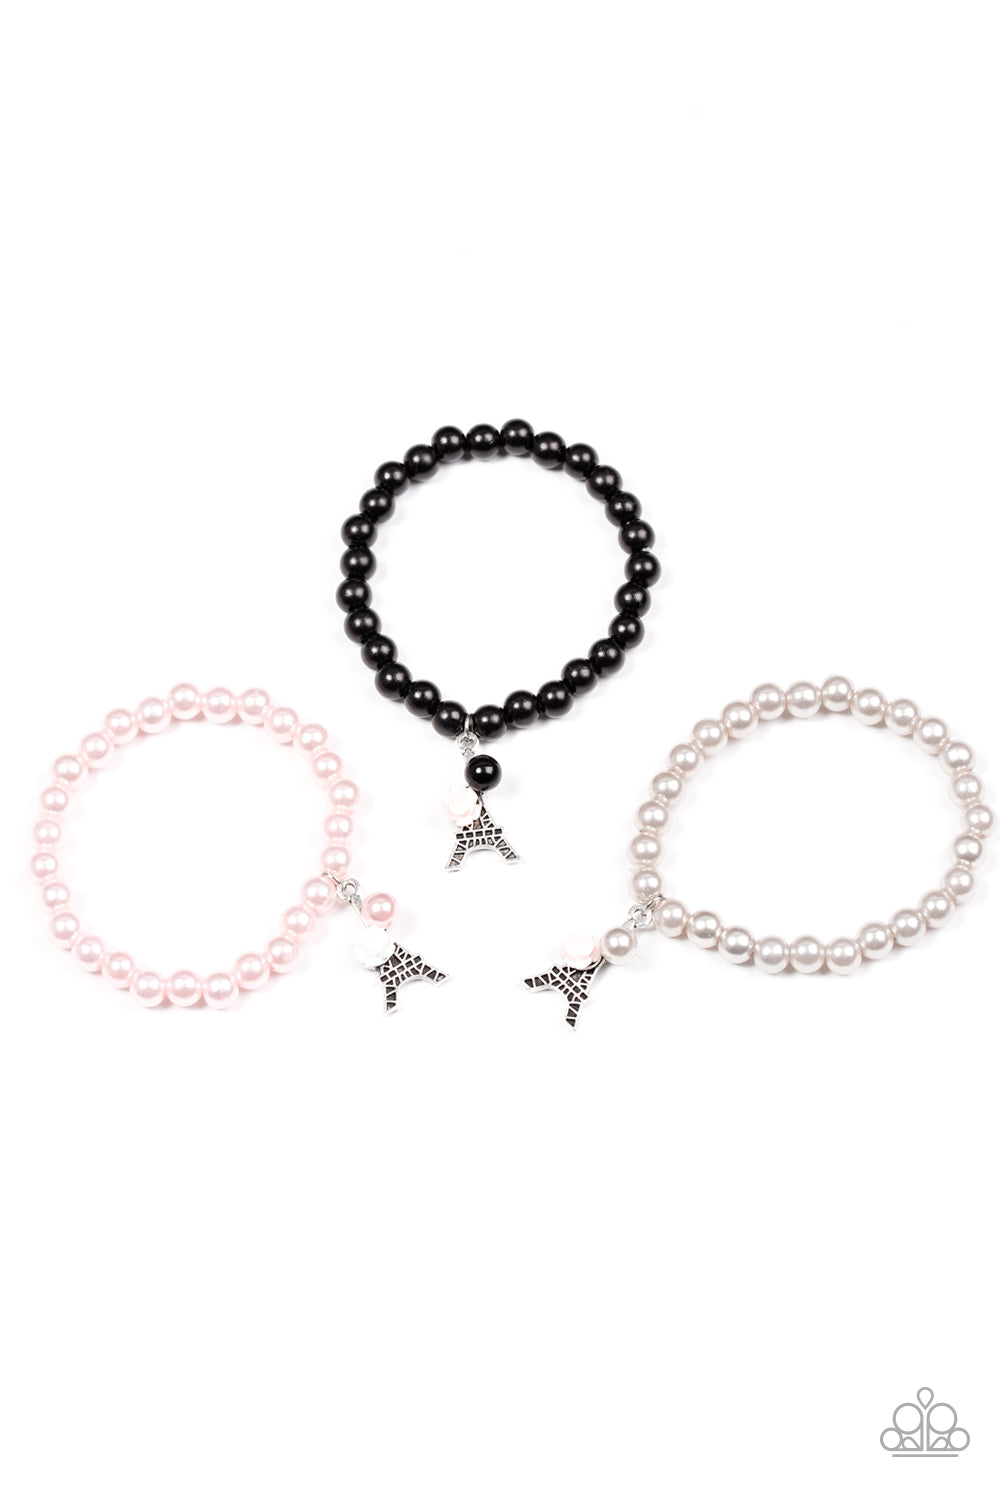 Eiffel Tower Pearl and Rose Bracelet - Paparazzi Starlet Shimmer - Pink Dragon Jewels